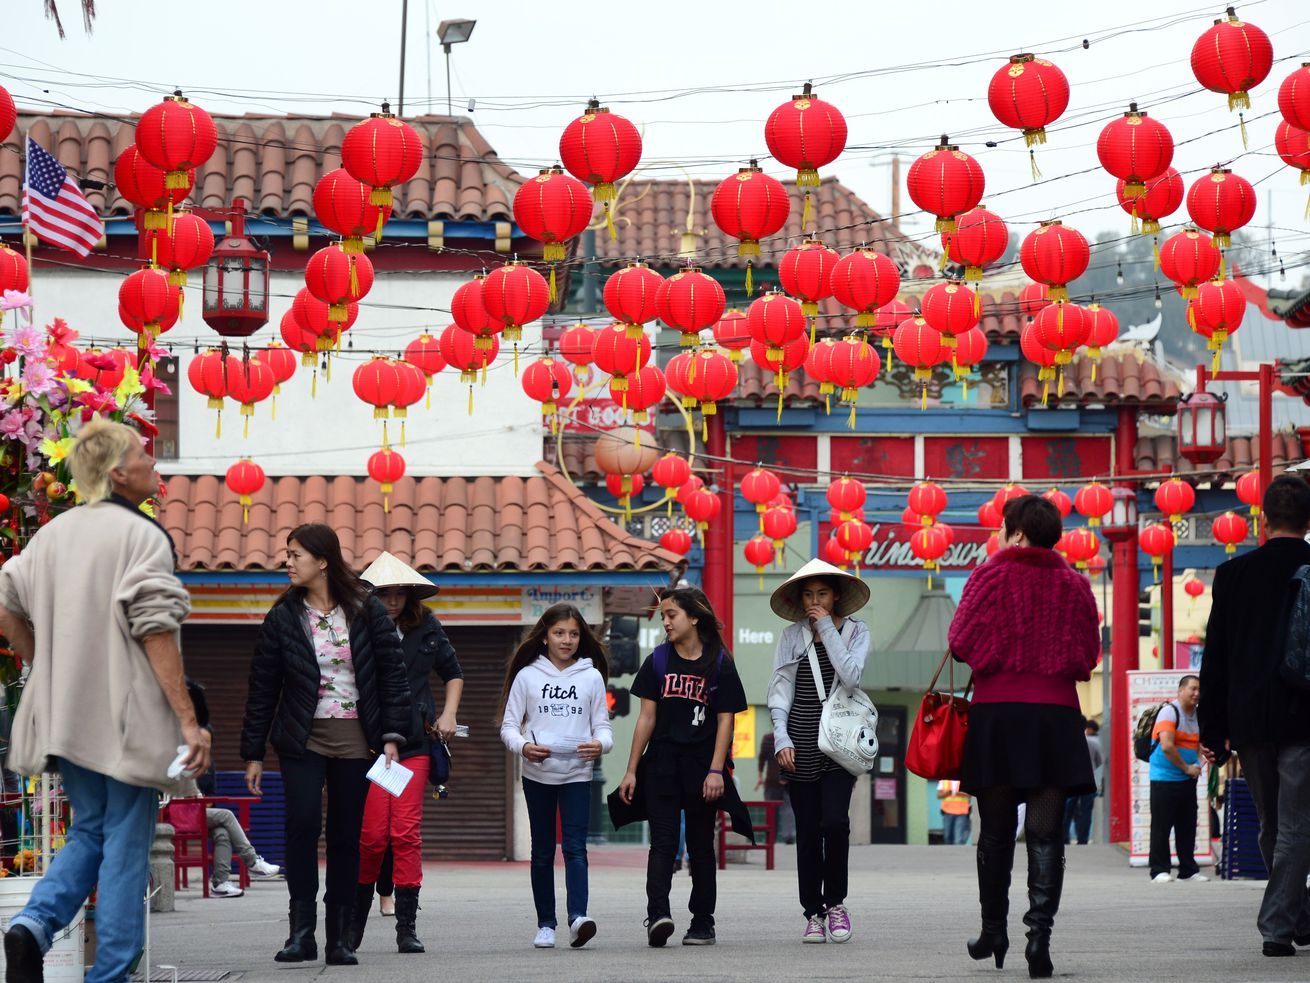 LA has some pedestrian-focused plazas like Chinatown's Gin Ling Way. But they do not create a network that help people get from place to place.